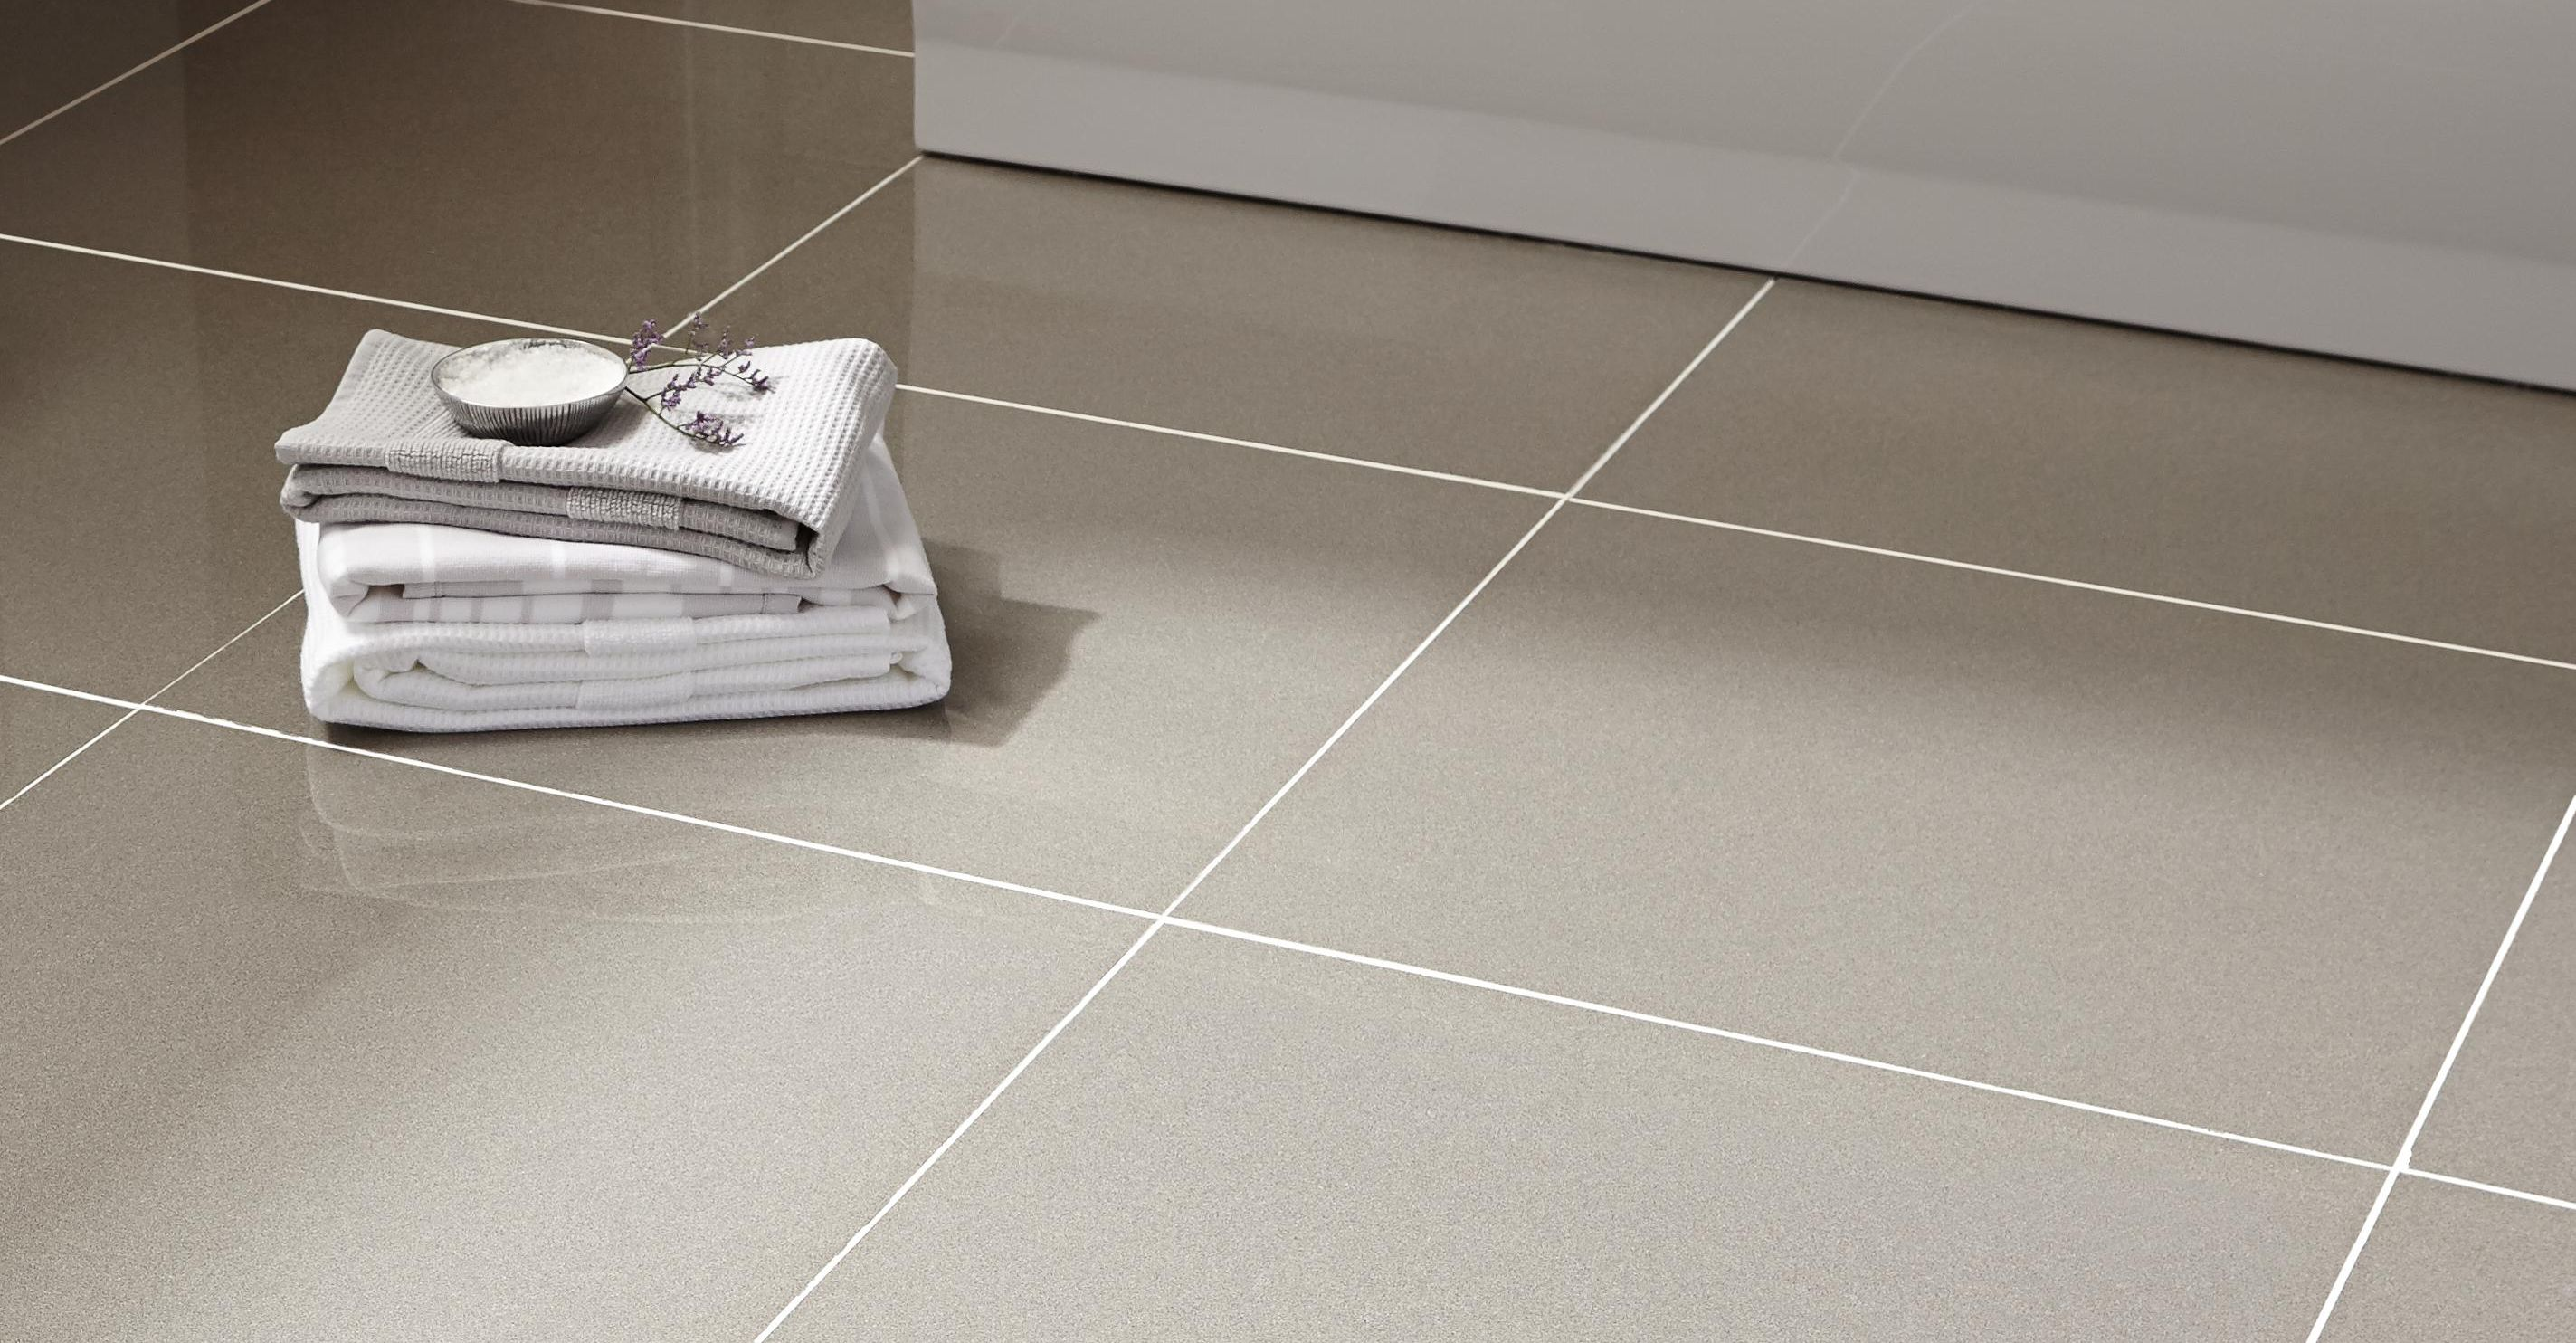 how to lay bathroom floor tiles how to lay floor tiles ideas amp advice diy at b amp q 25435